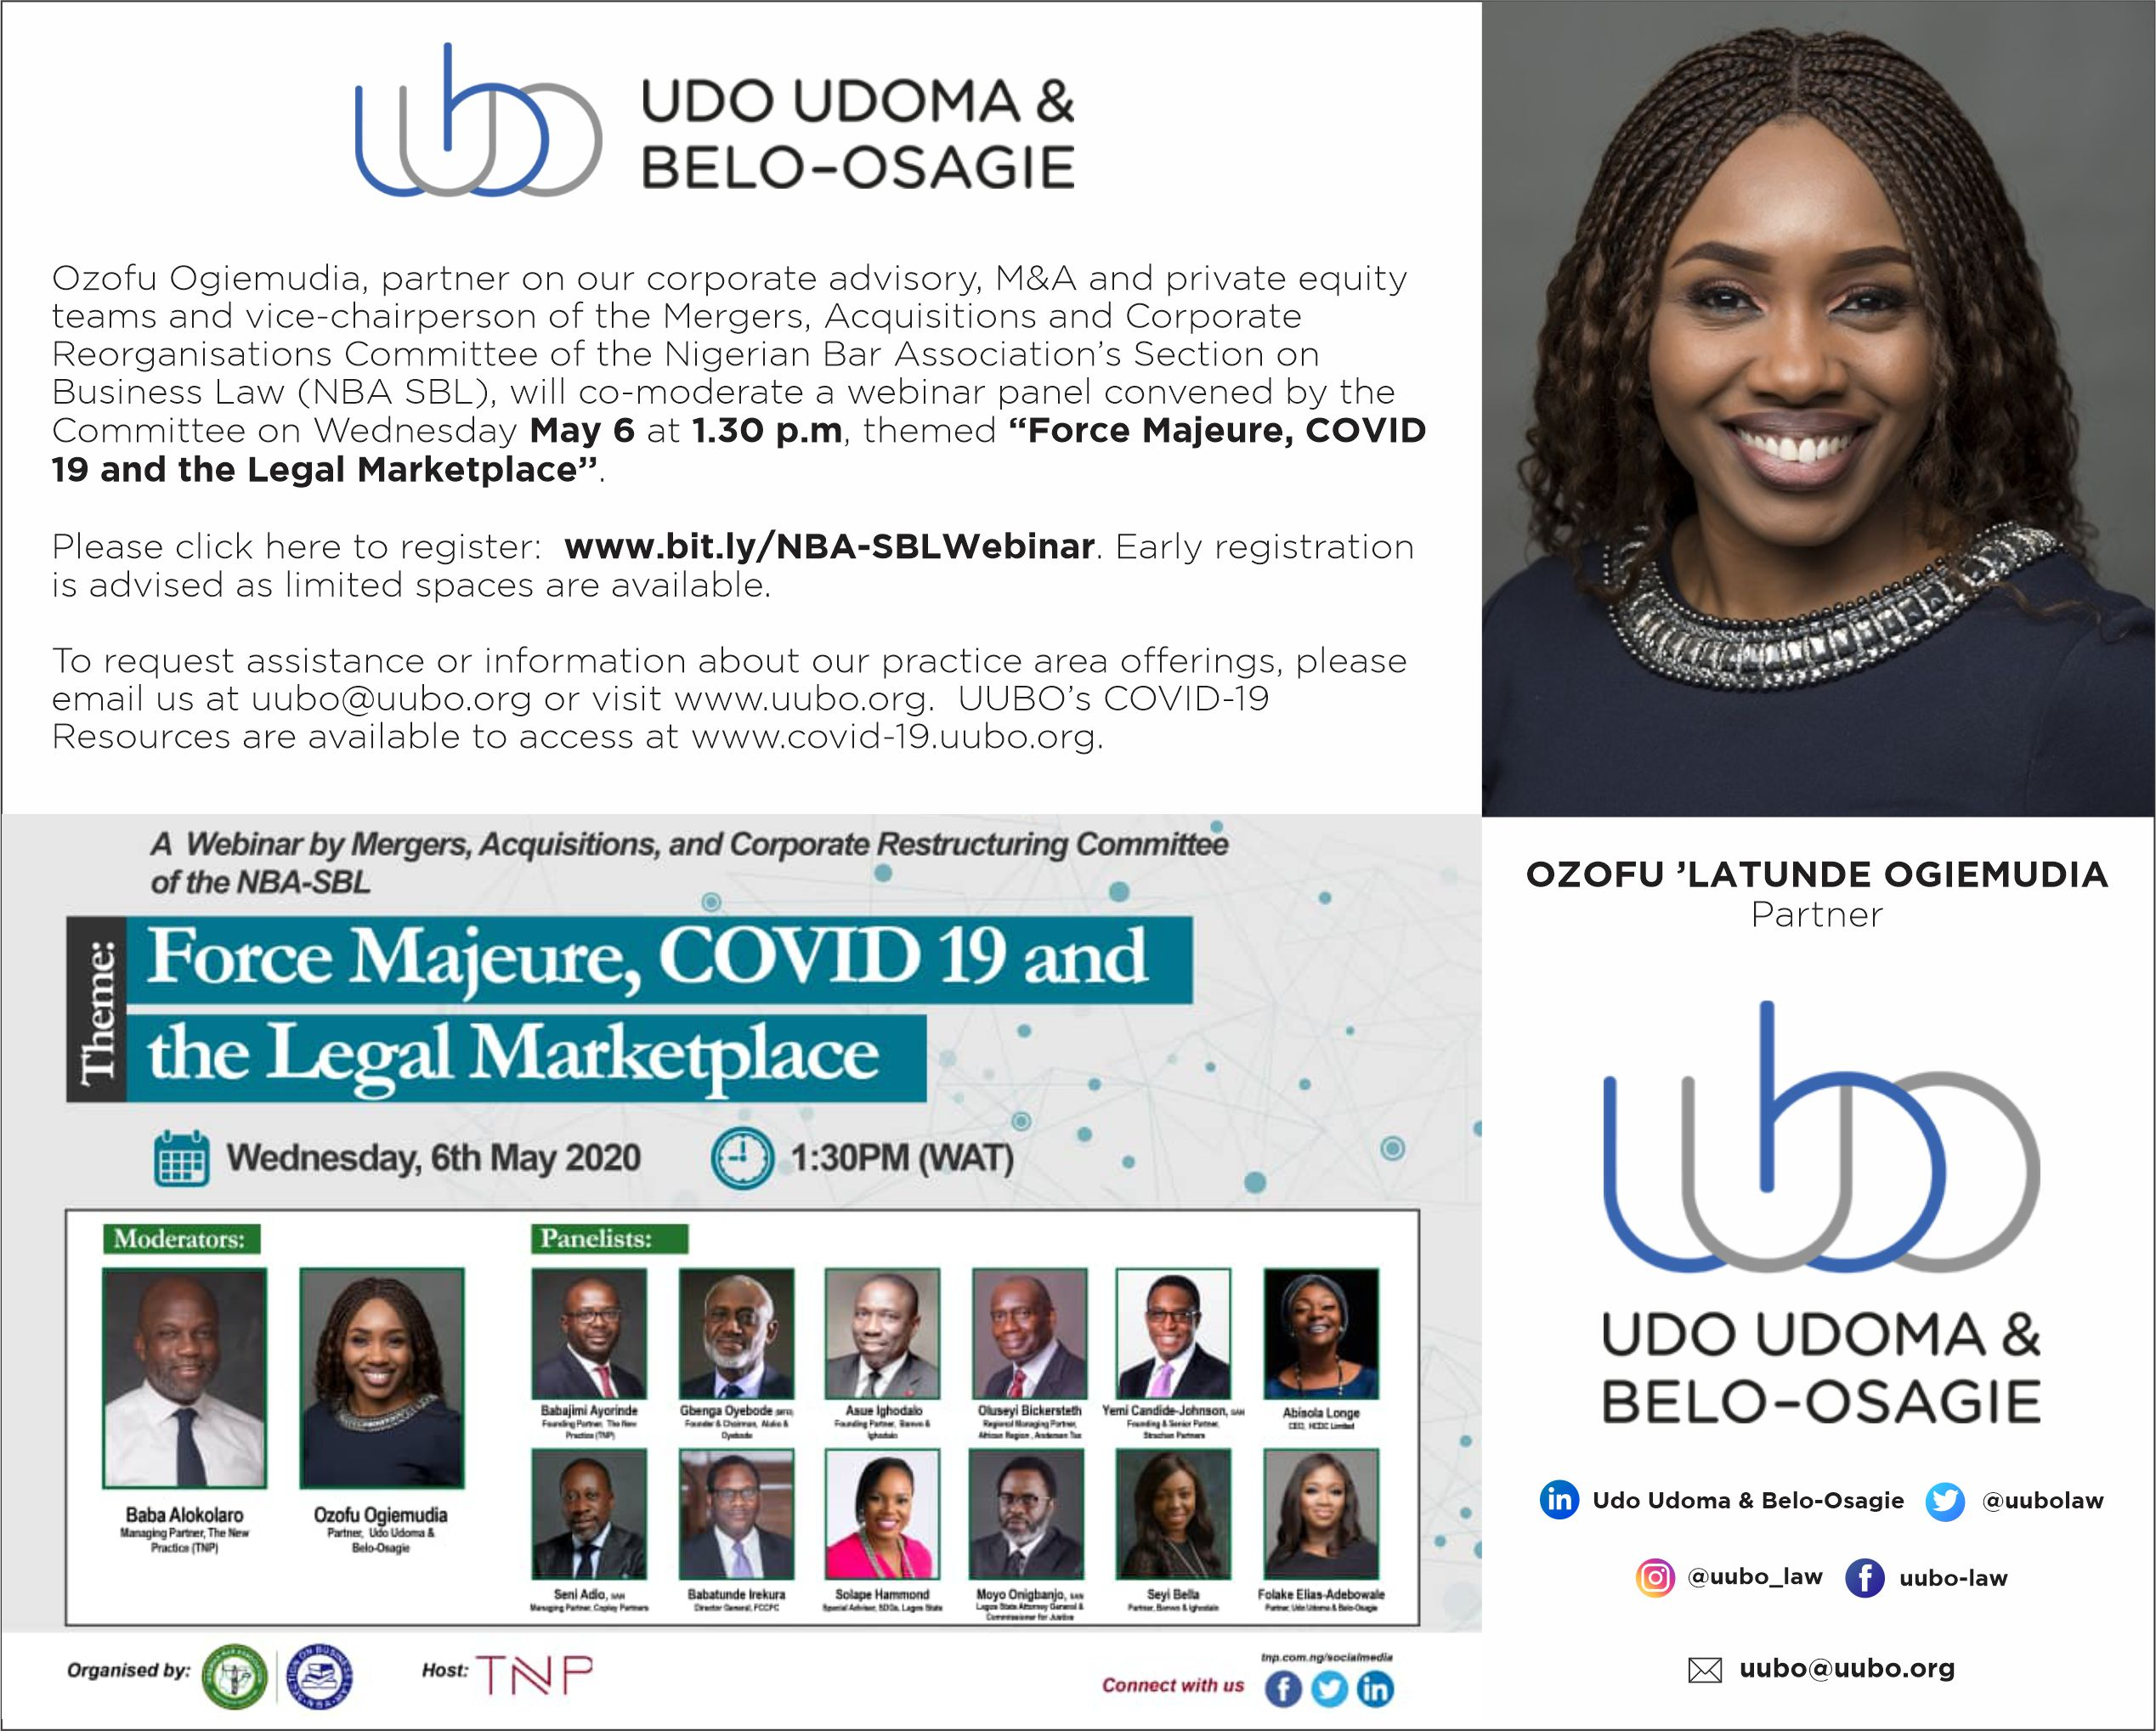 WEBINAR: FORCE MAJEURE, COVID 19 AND THE LEGAL MARKETPLACE